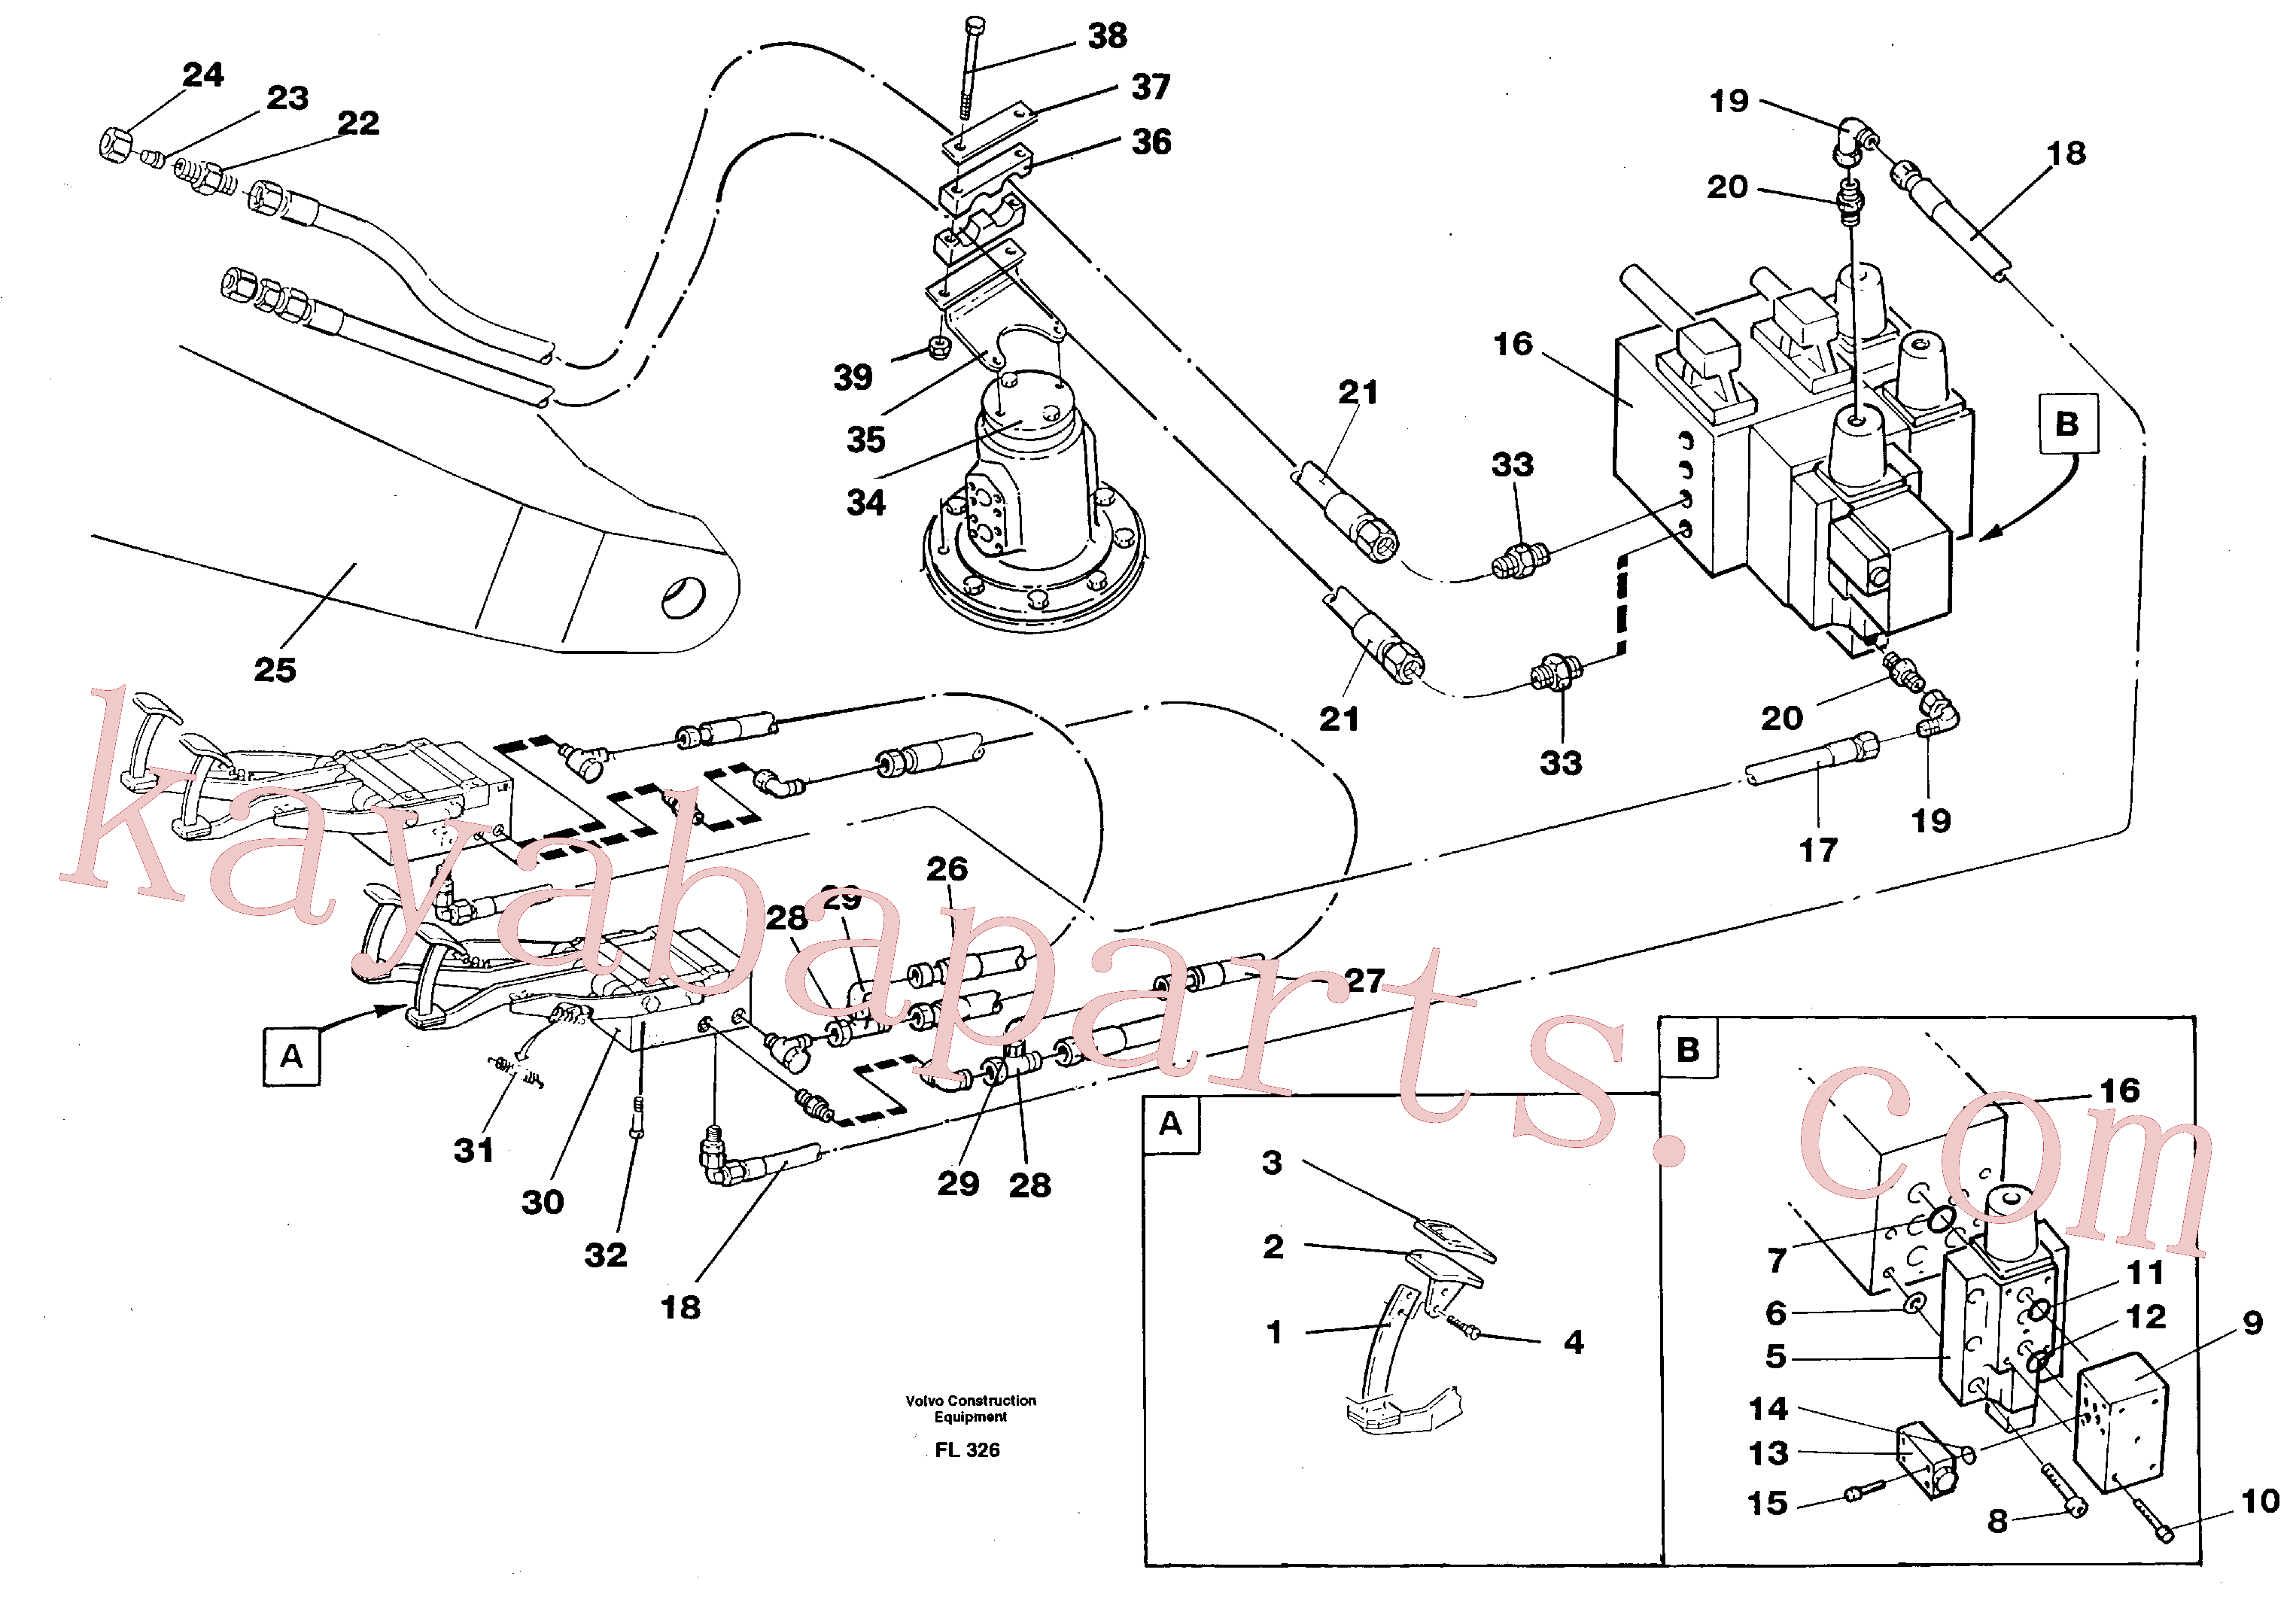 VOE14213151 for Volvo Slope bucket/rotating grab hydraulics in base machine(FL326 assembly)